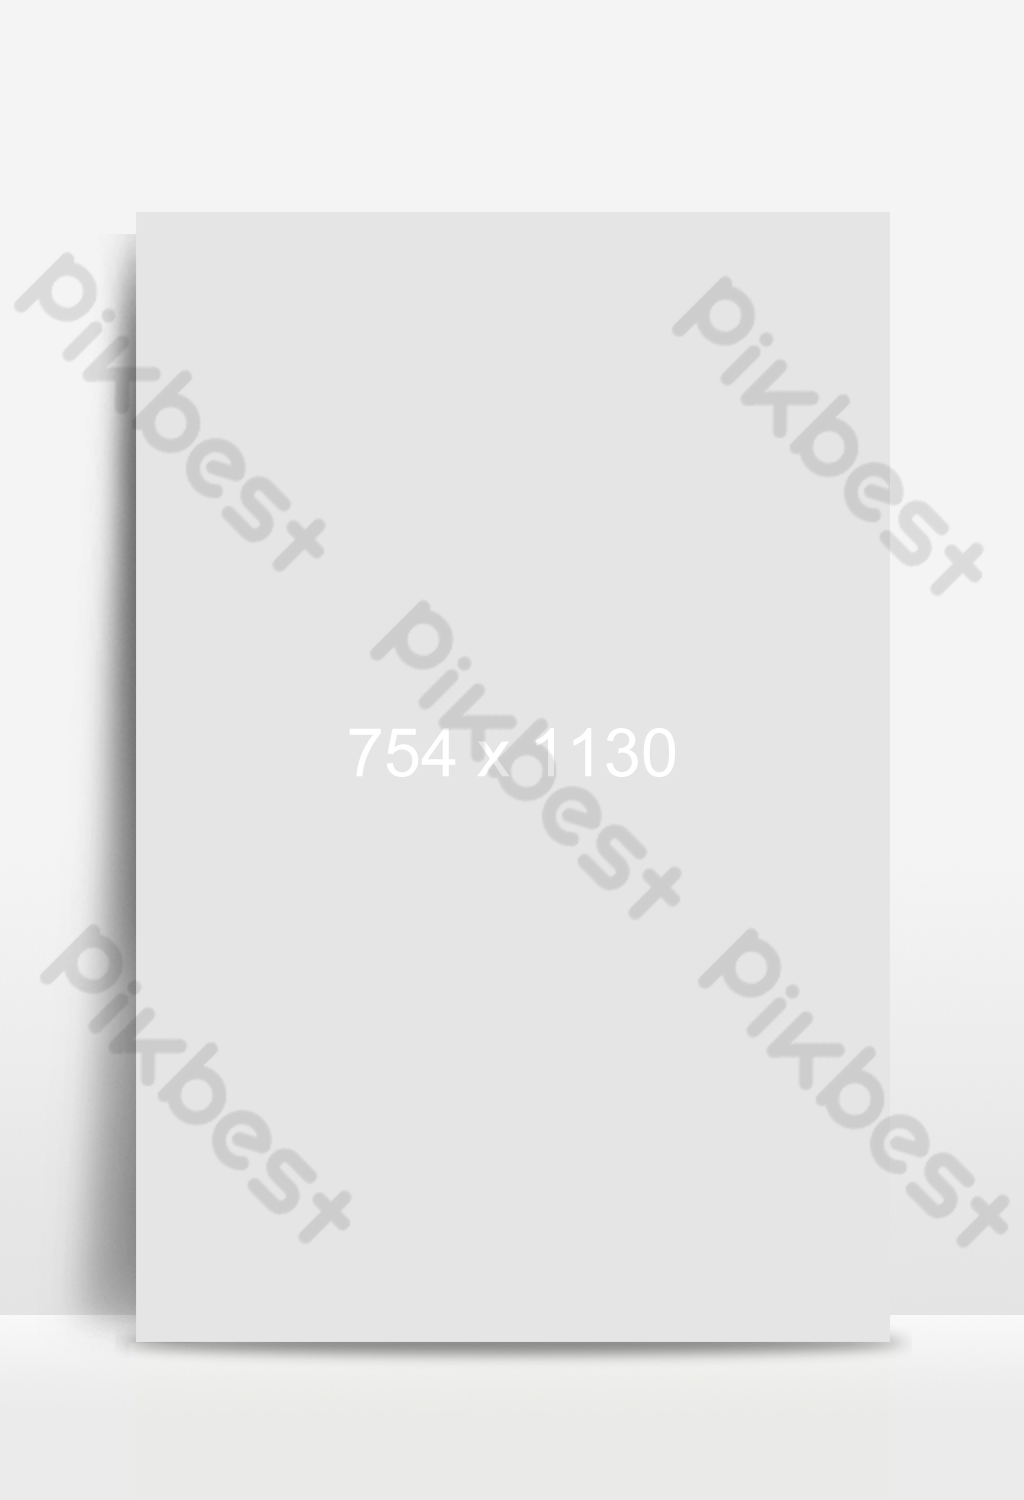 Coconut Tree Seagull Vacation Background Poster Backgrounds Psd Free Download Pikbest